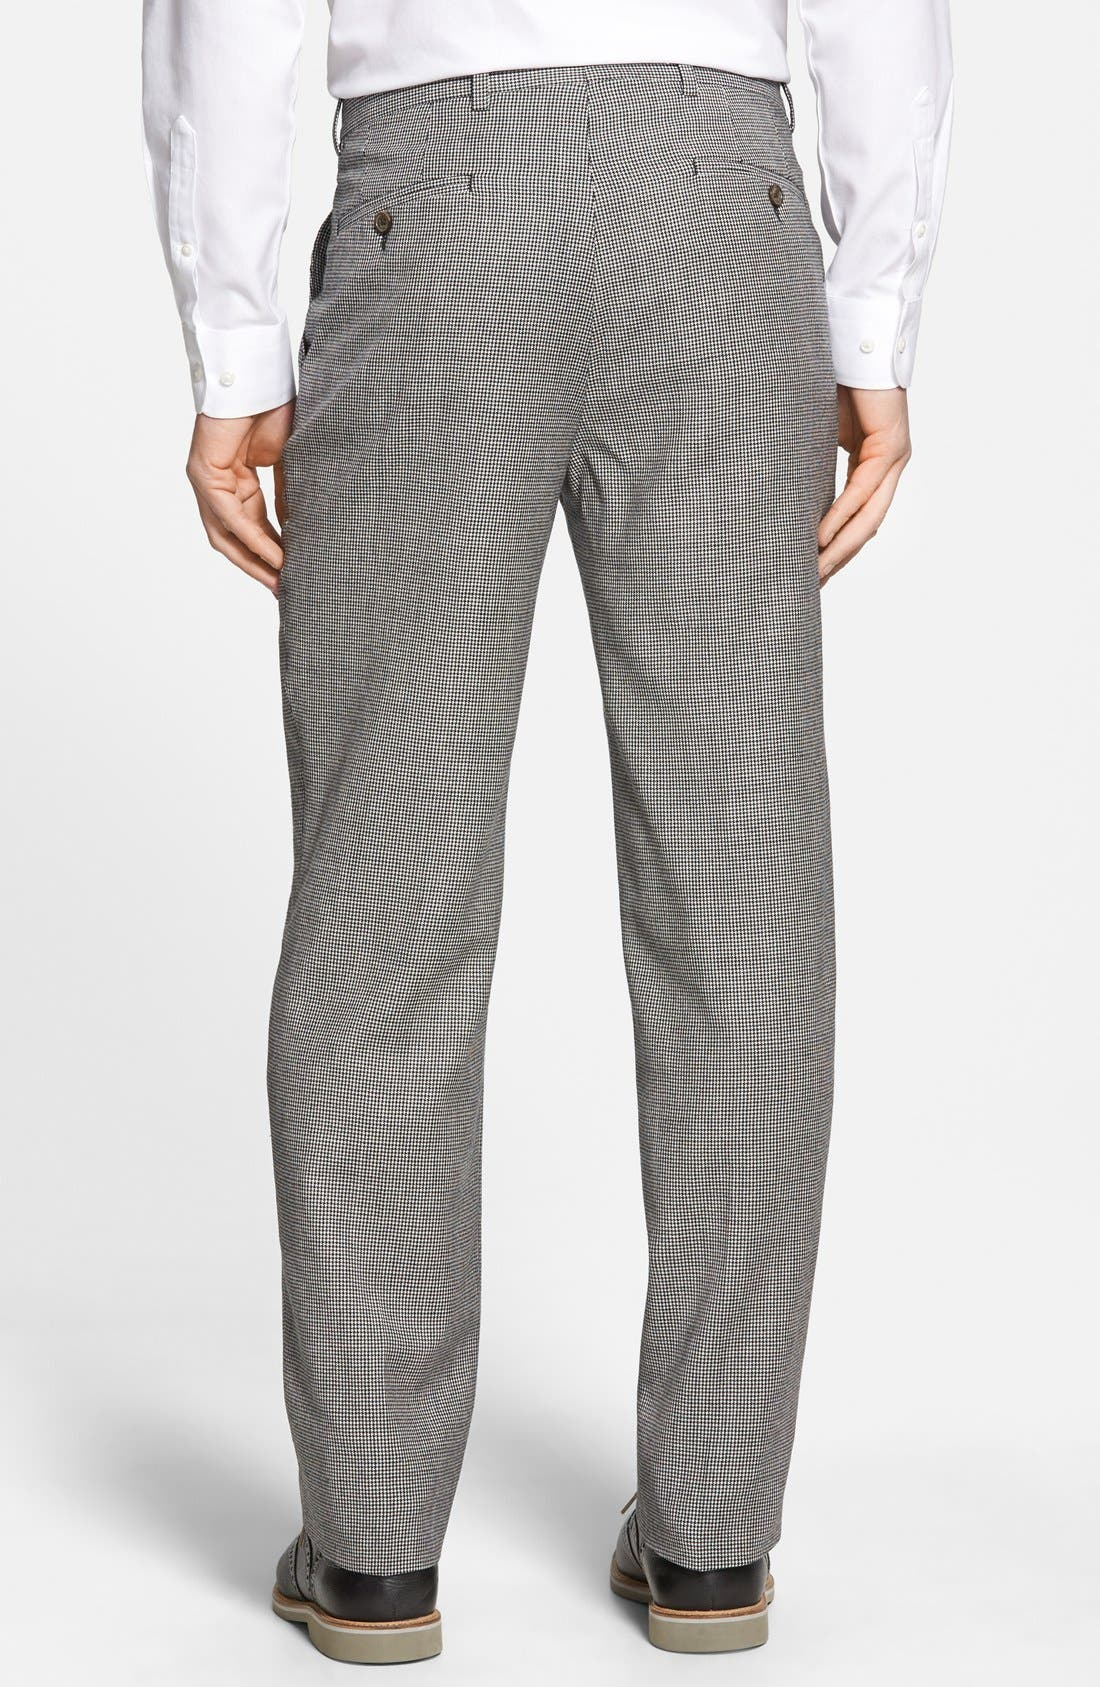 Flat Front Houndstooth Wool Trousers,                             Alternate thumbnail 3, color,                             060